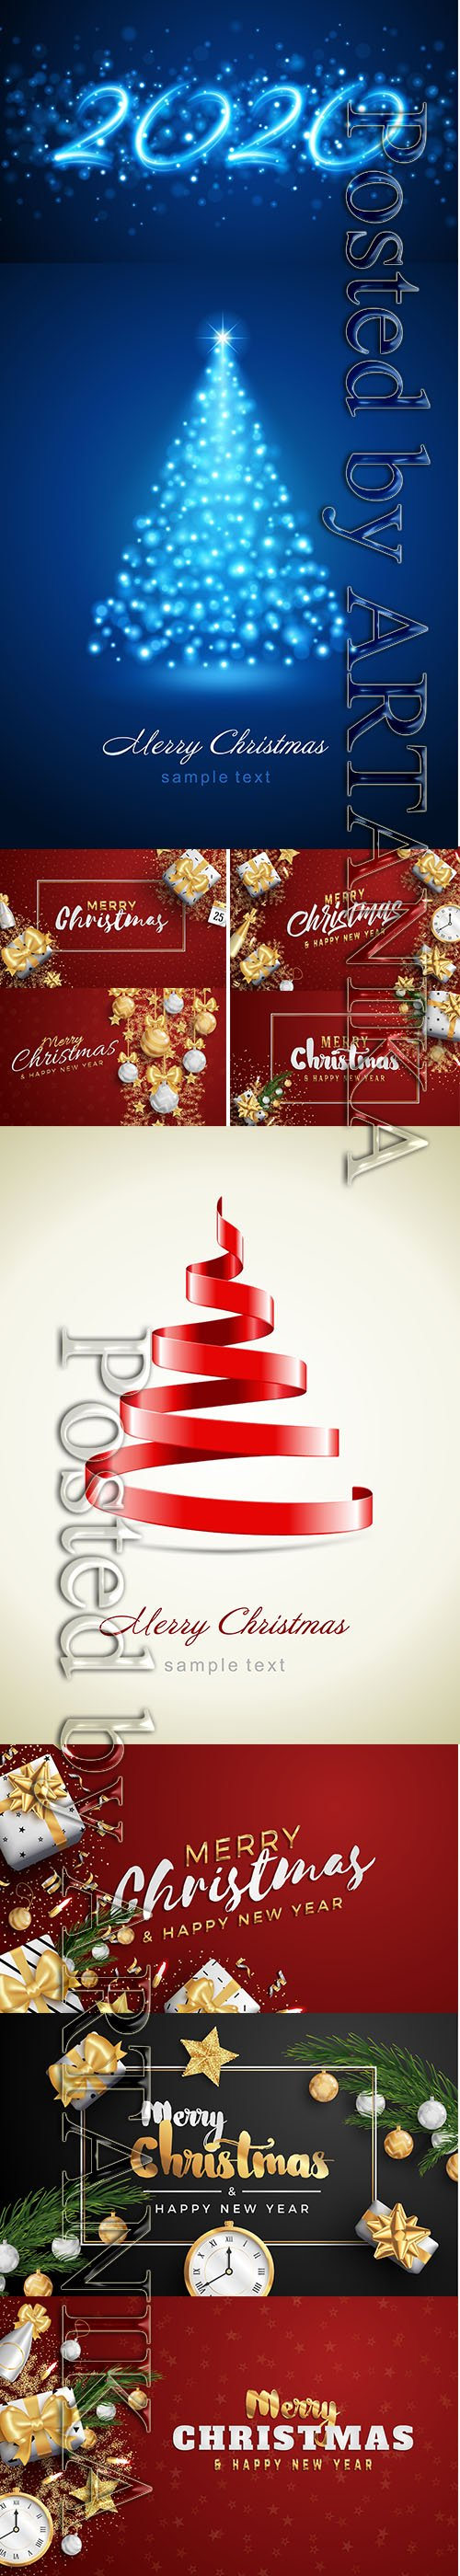 Merry Christmas and New Year Banner Template Vector Illustrations